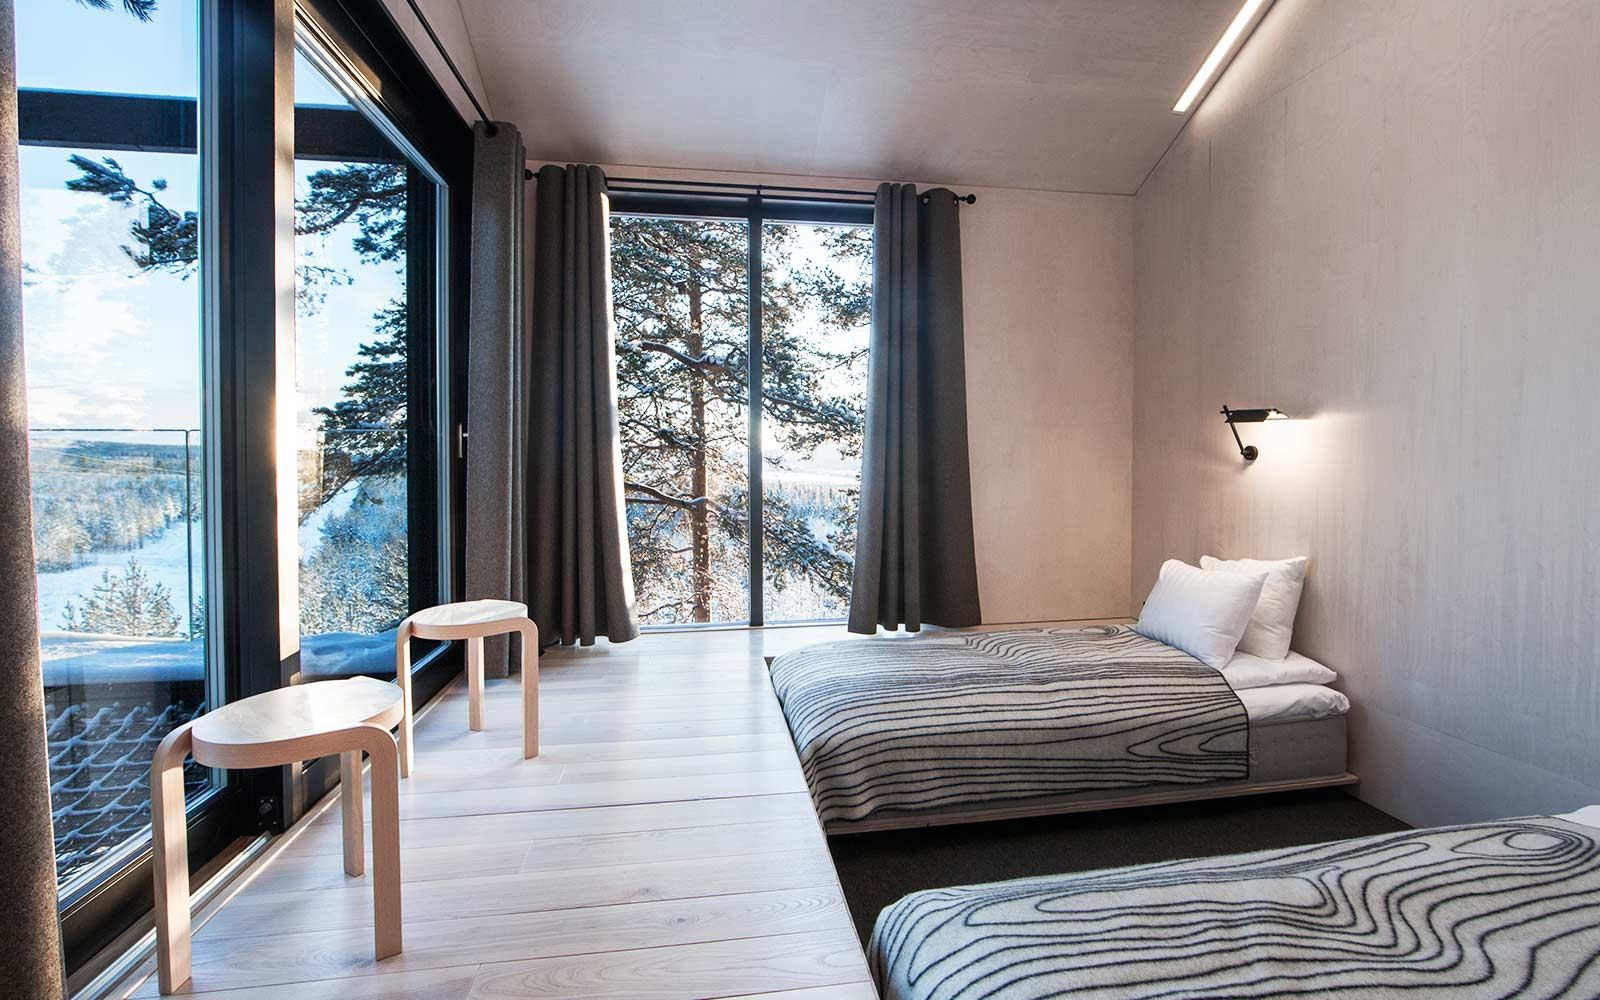 New treehouse in Sweden with Northern Lights views